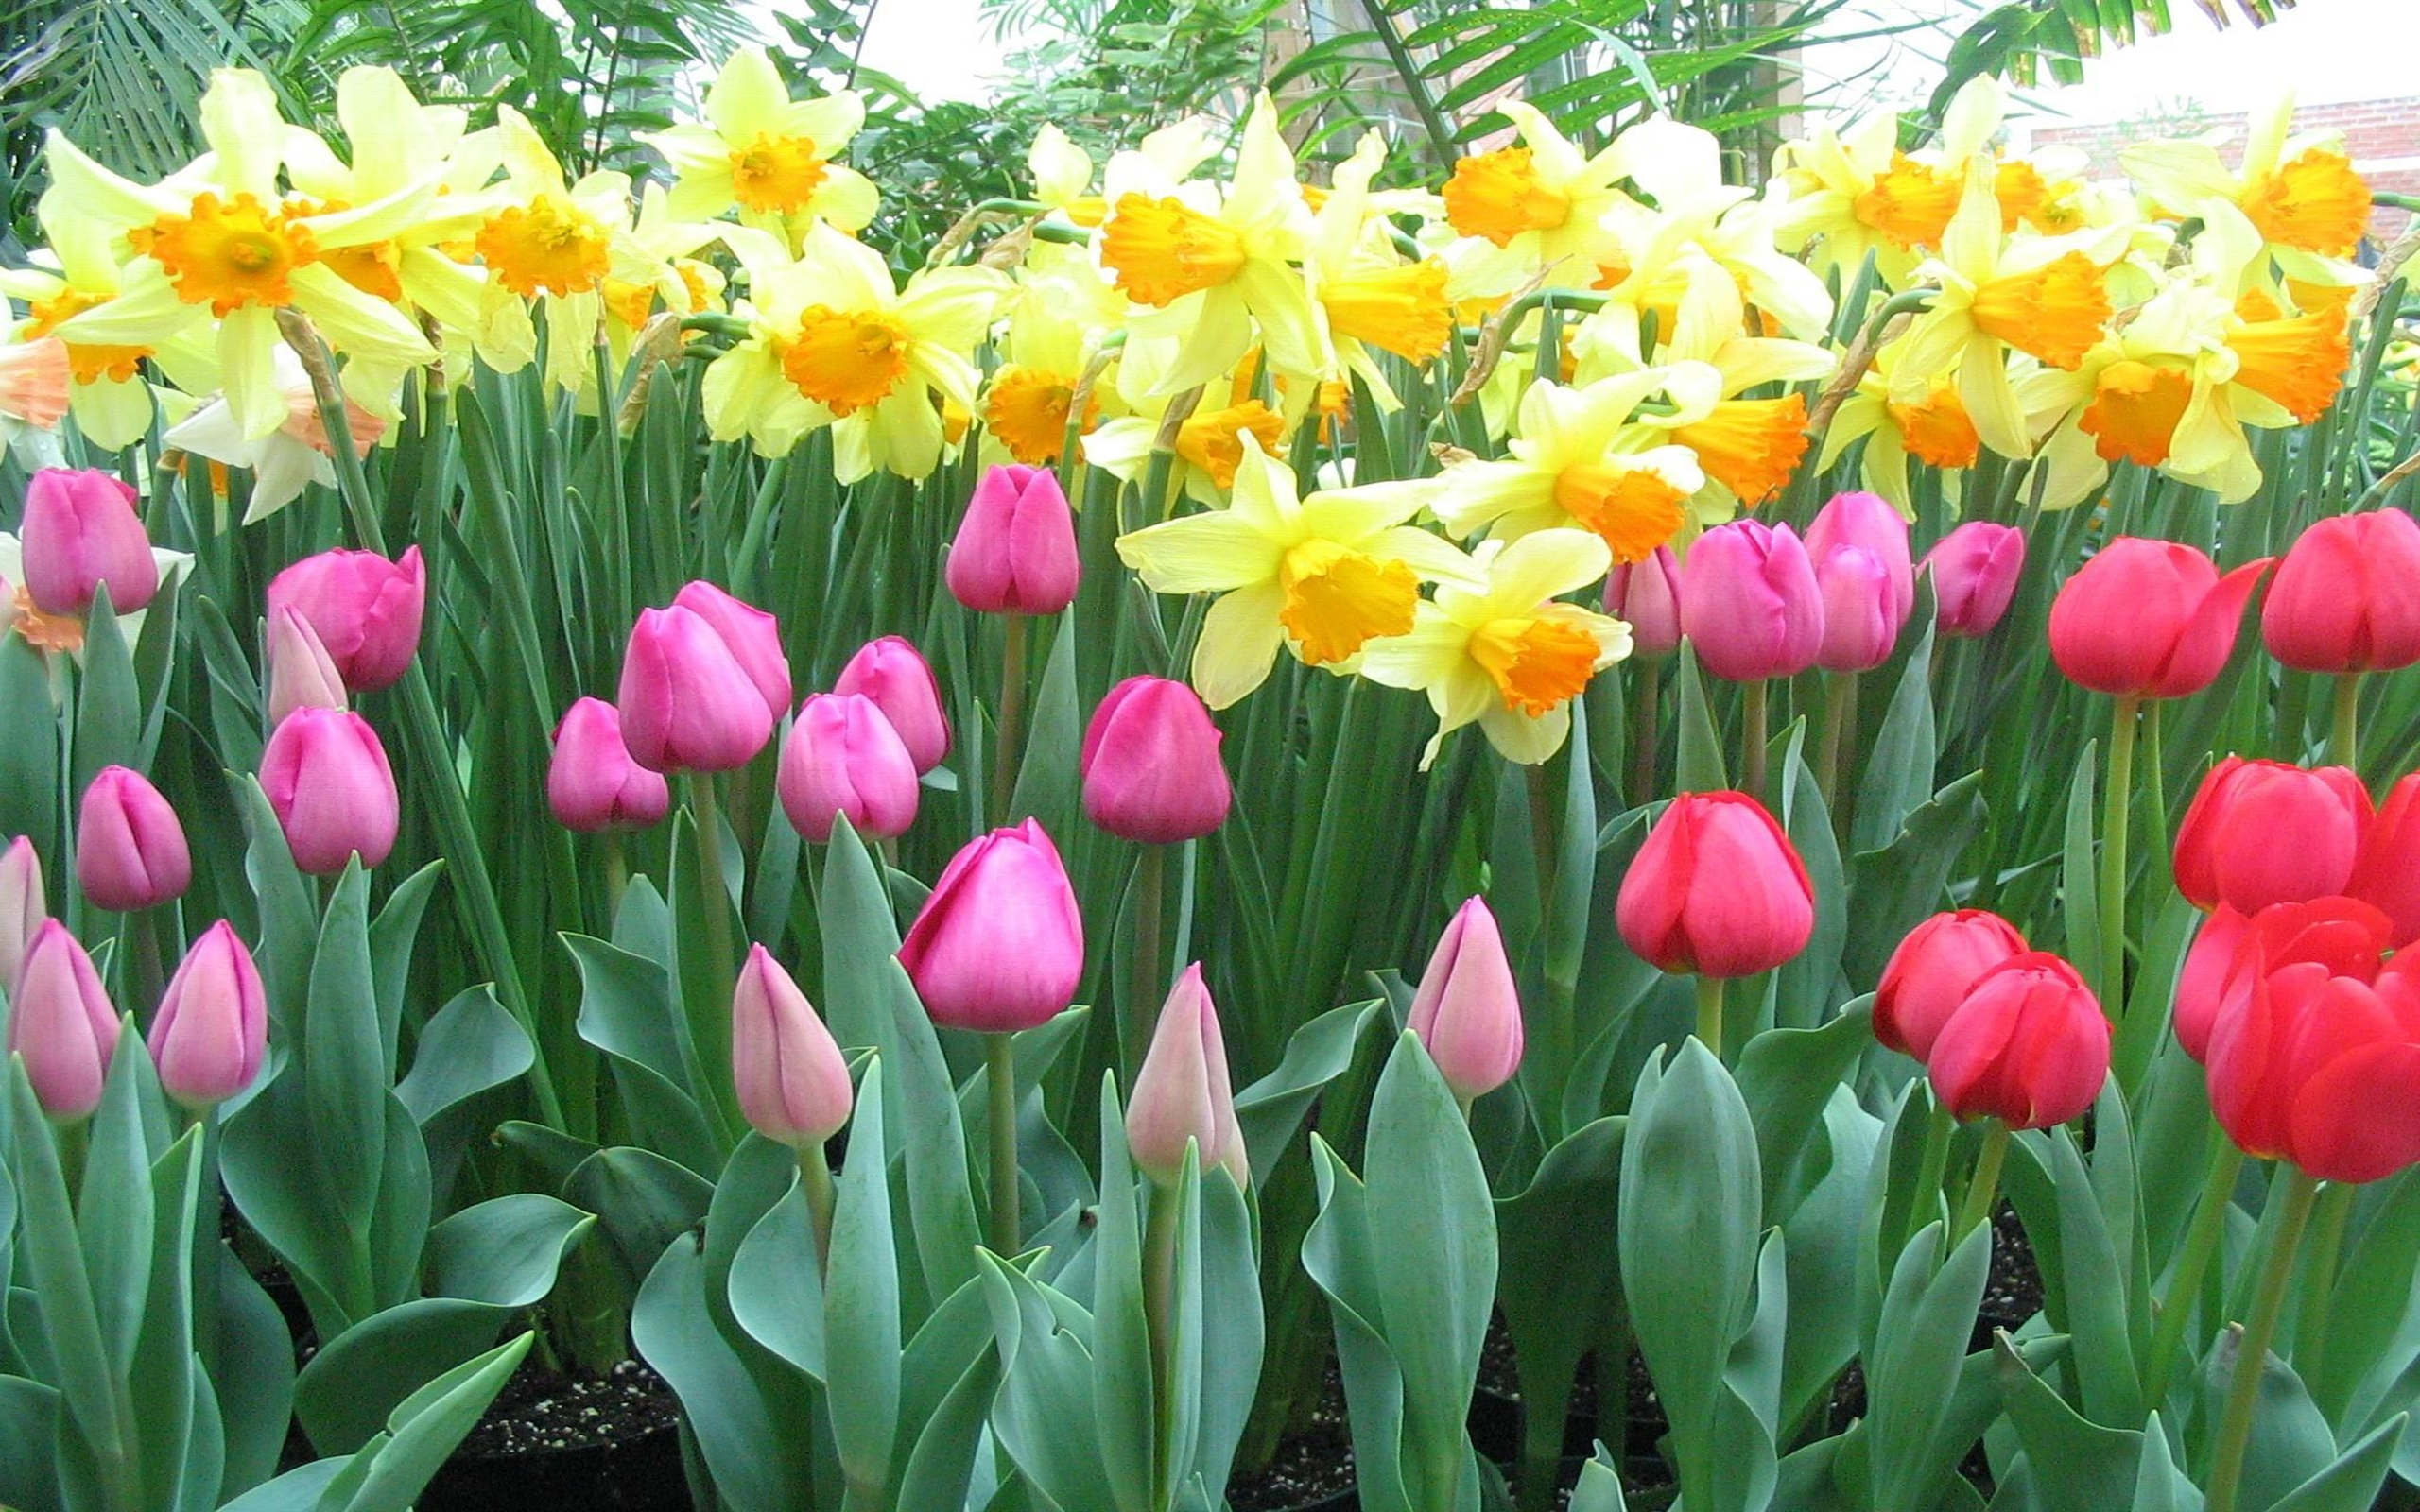 Floral Wallpaper For Iphone 5 Tulips And Daffodils Wallpapers13 Com